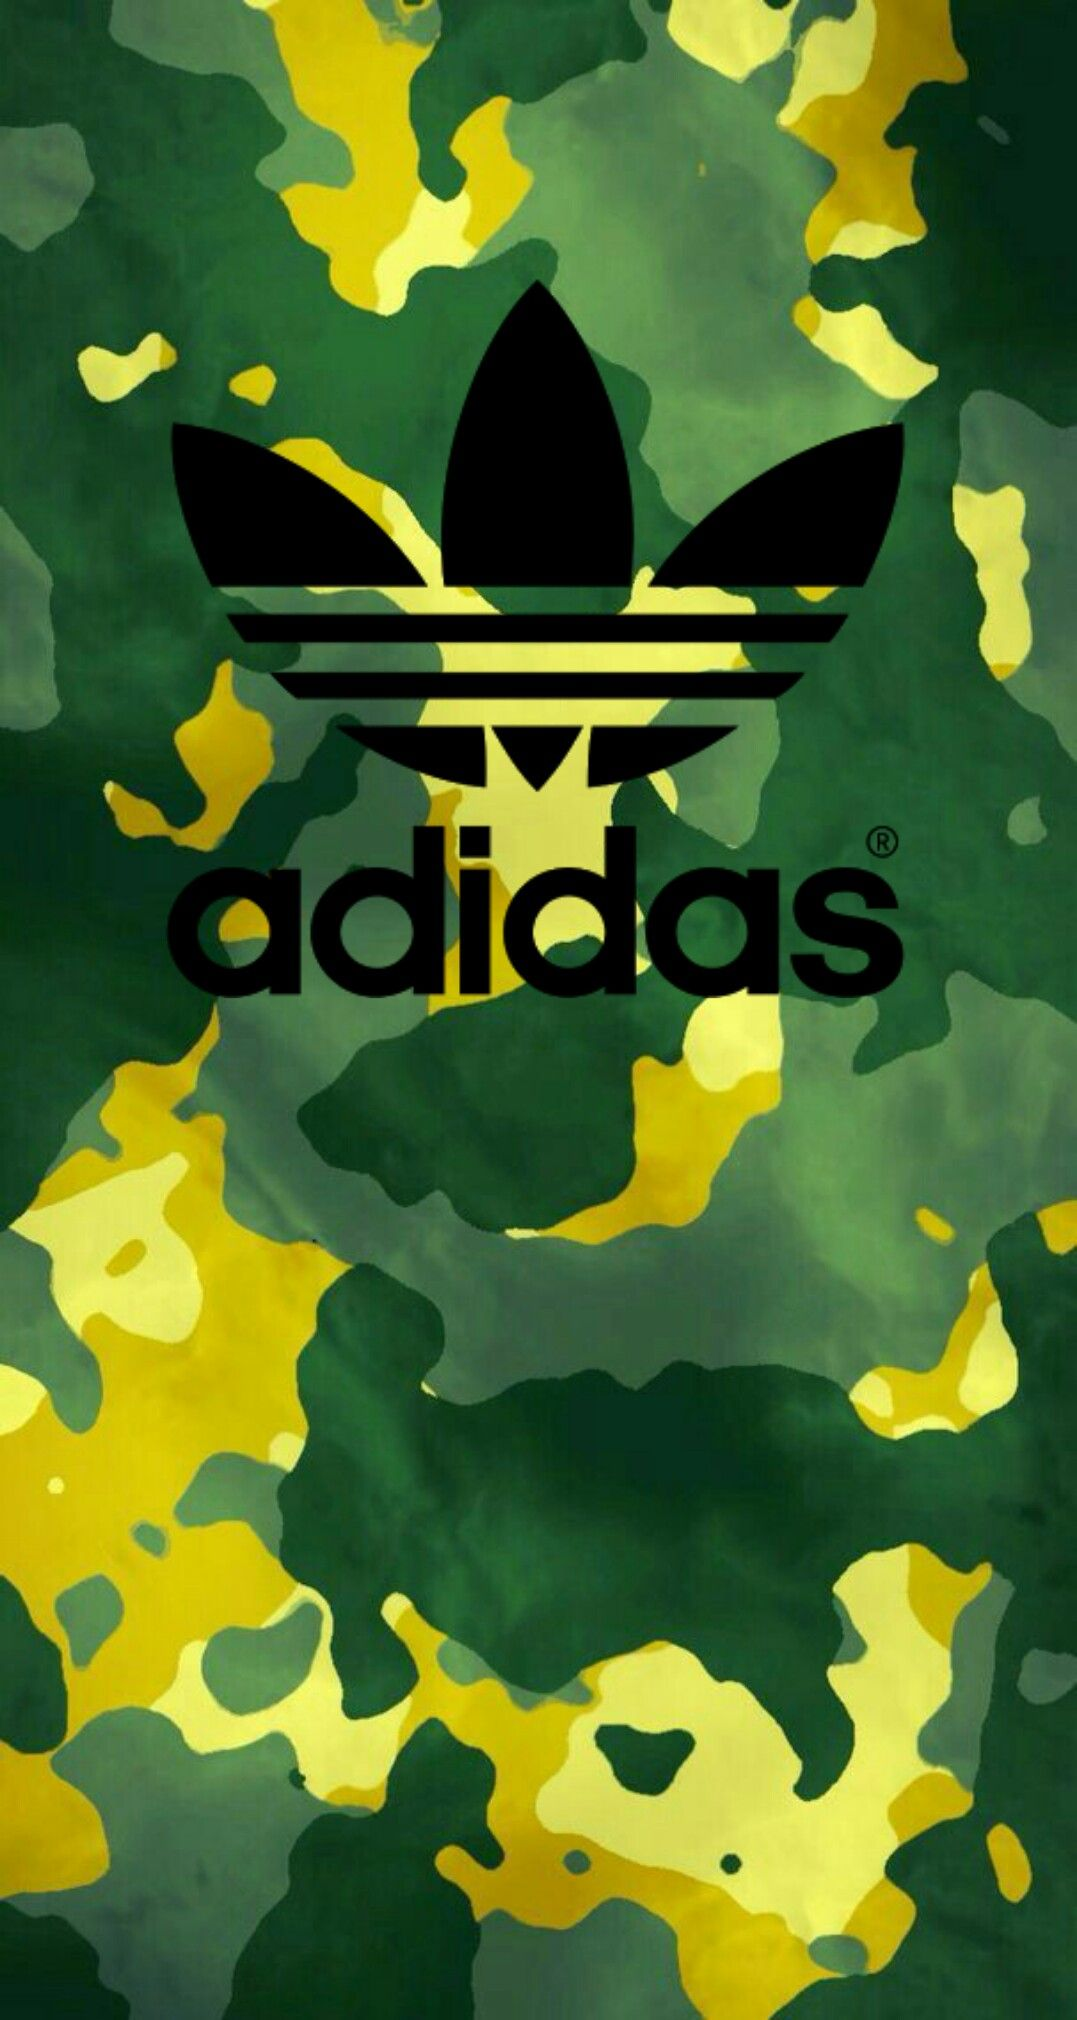 adidas camouflage wallpaper iPhone android